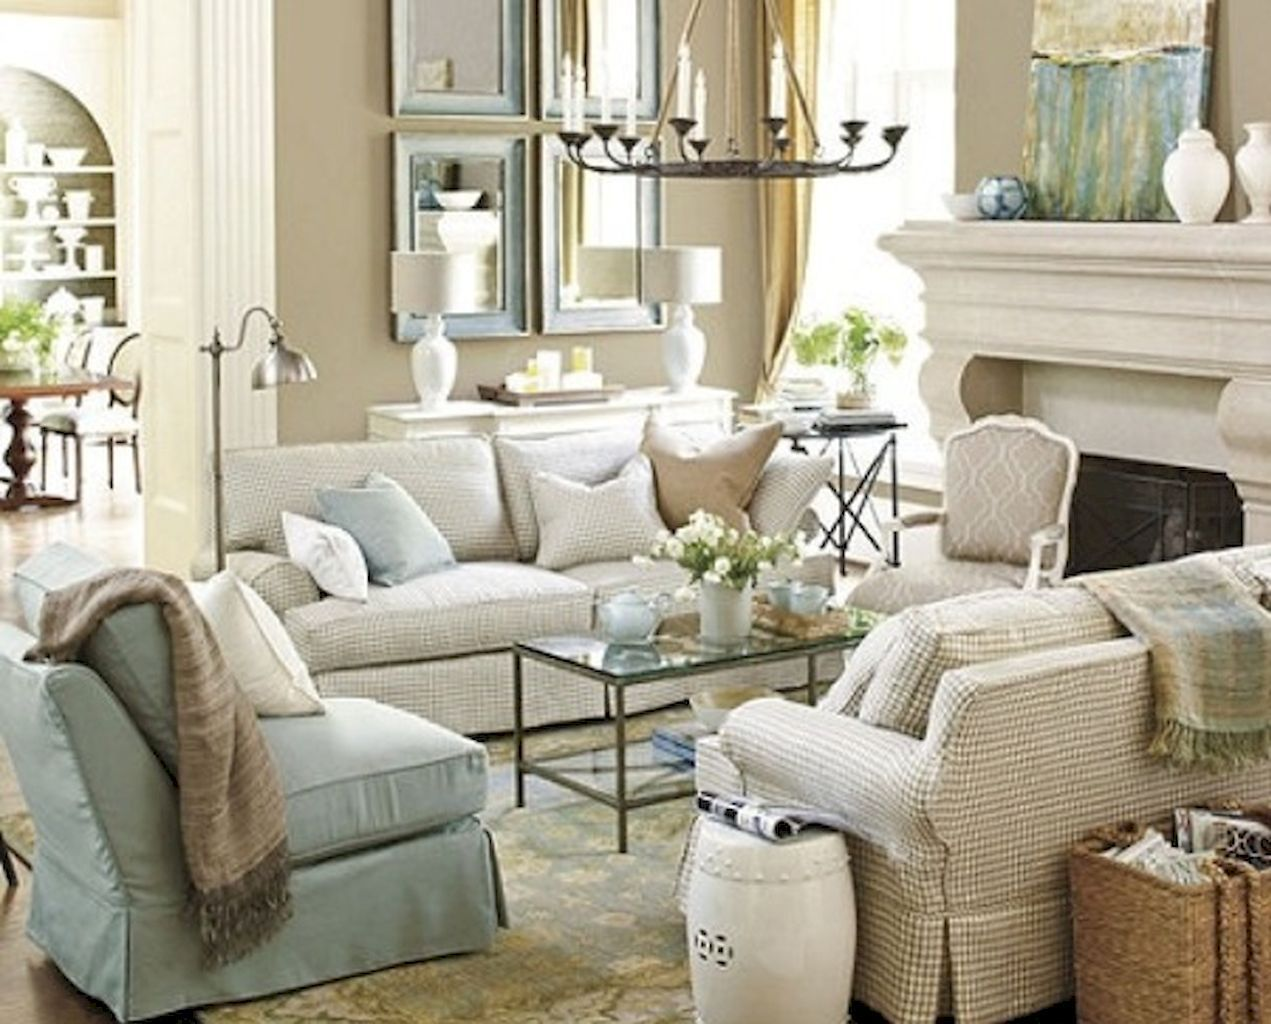 52 Marvelous French Country Living Room Ideas Blue And White